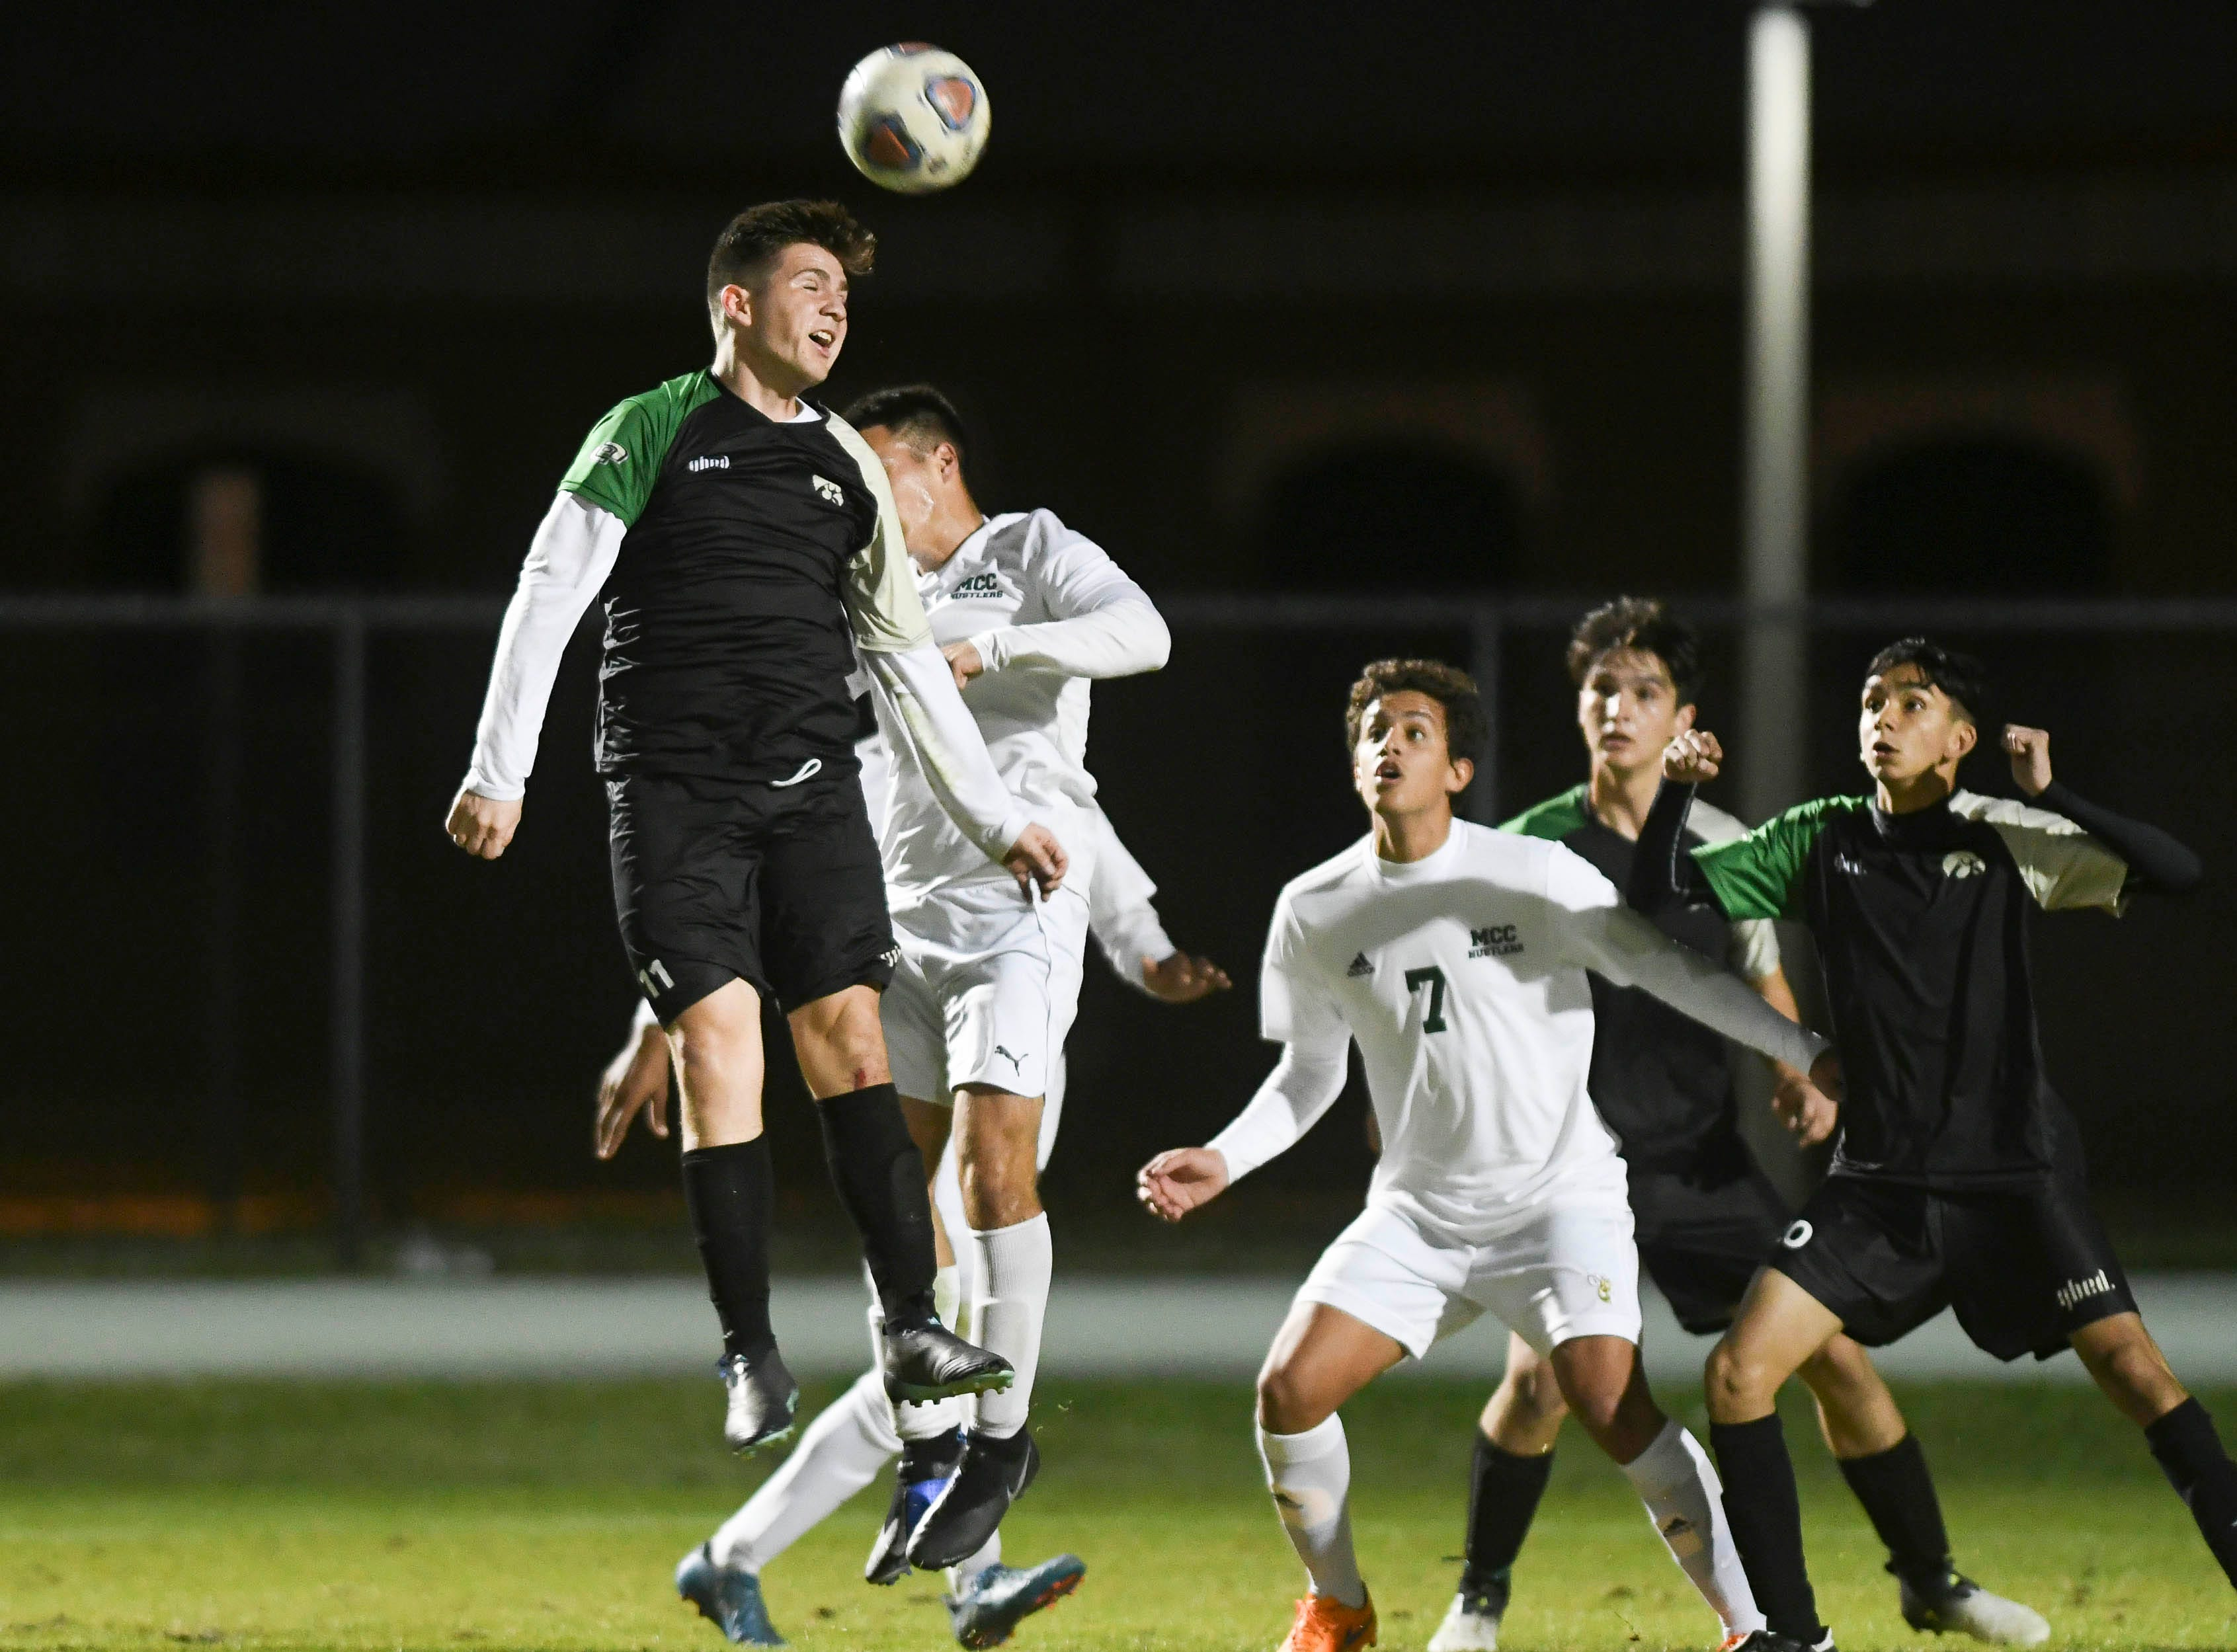 Christian Becerra of Viera heads the ball away from the Hawks goal during Friday's game in Viera